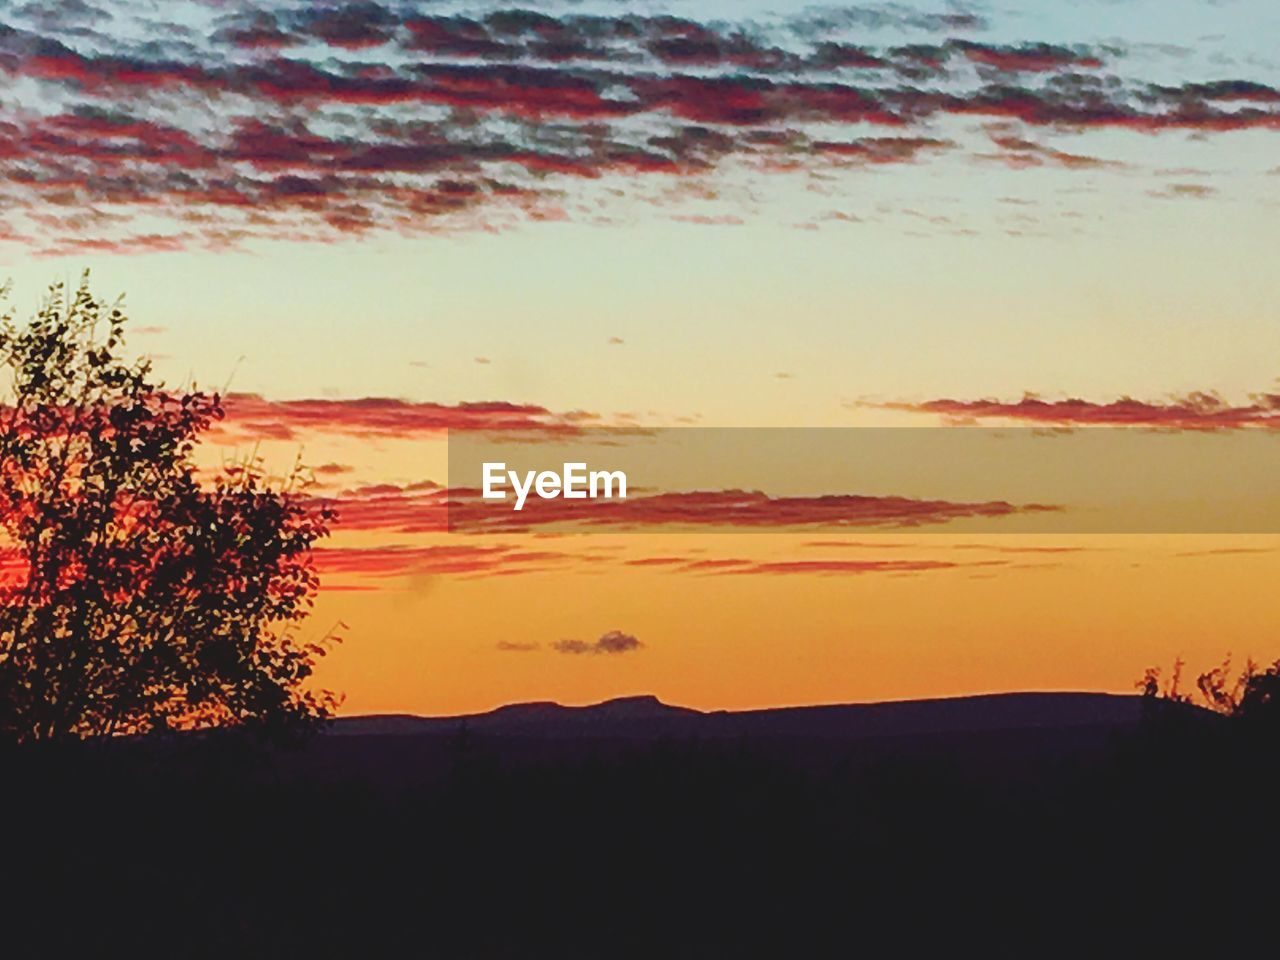 sunset, silhouette, beauty in nature, nature, orange color, tree, tranquil scene, scenics, tranquility, sky, no people, outdoors, landscape, mountain